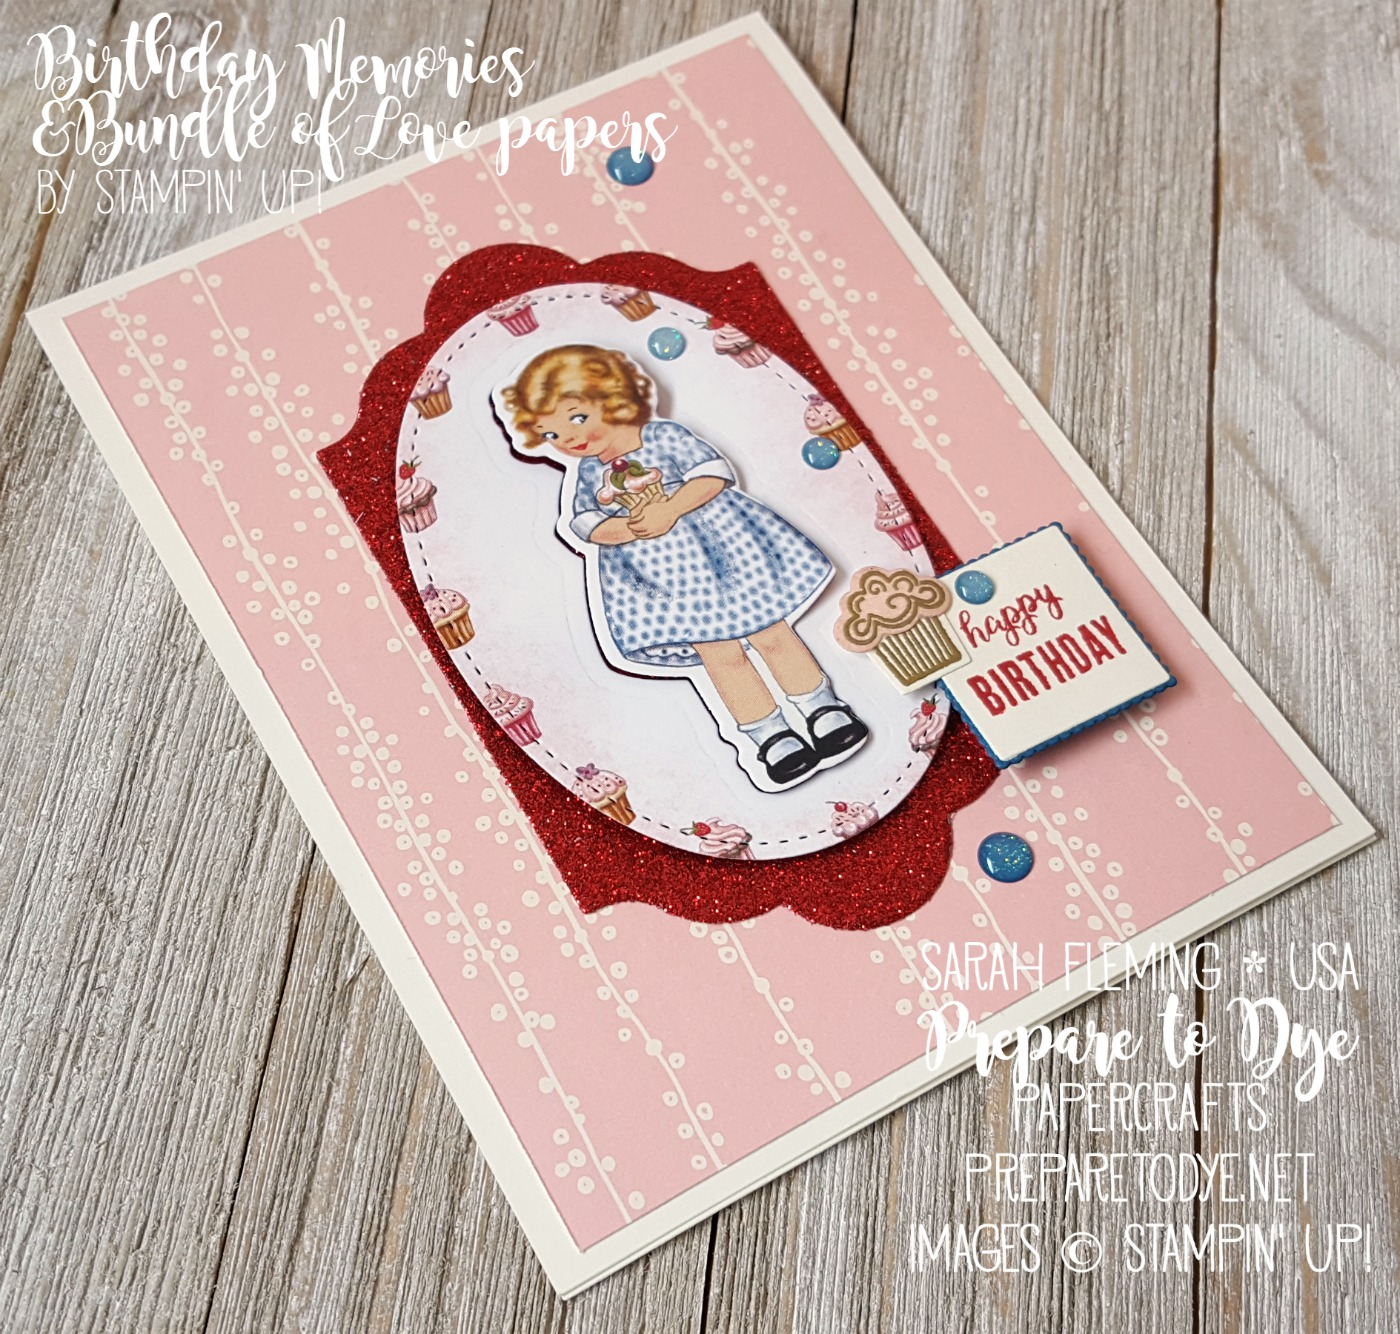 Stampin' Up! Birthday Memories paper and Bundle of Love Paper with Tabs for Everything and Lift Me Up stamps - Splitcoaststampers Creative Crew - Sarah Fleming - Prepare to Dye Papercrafts